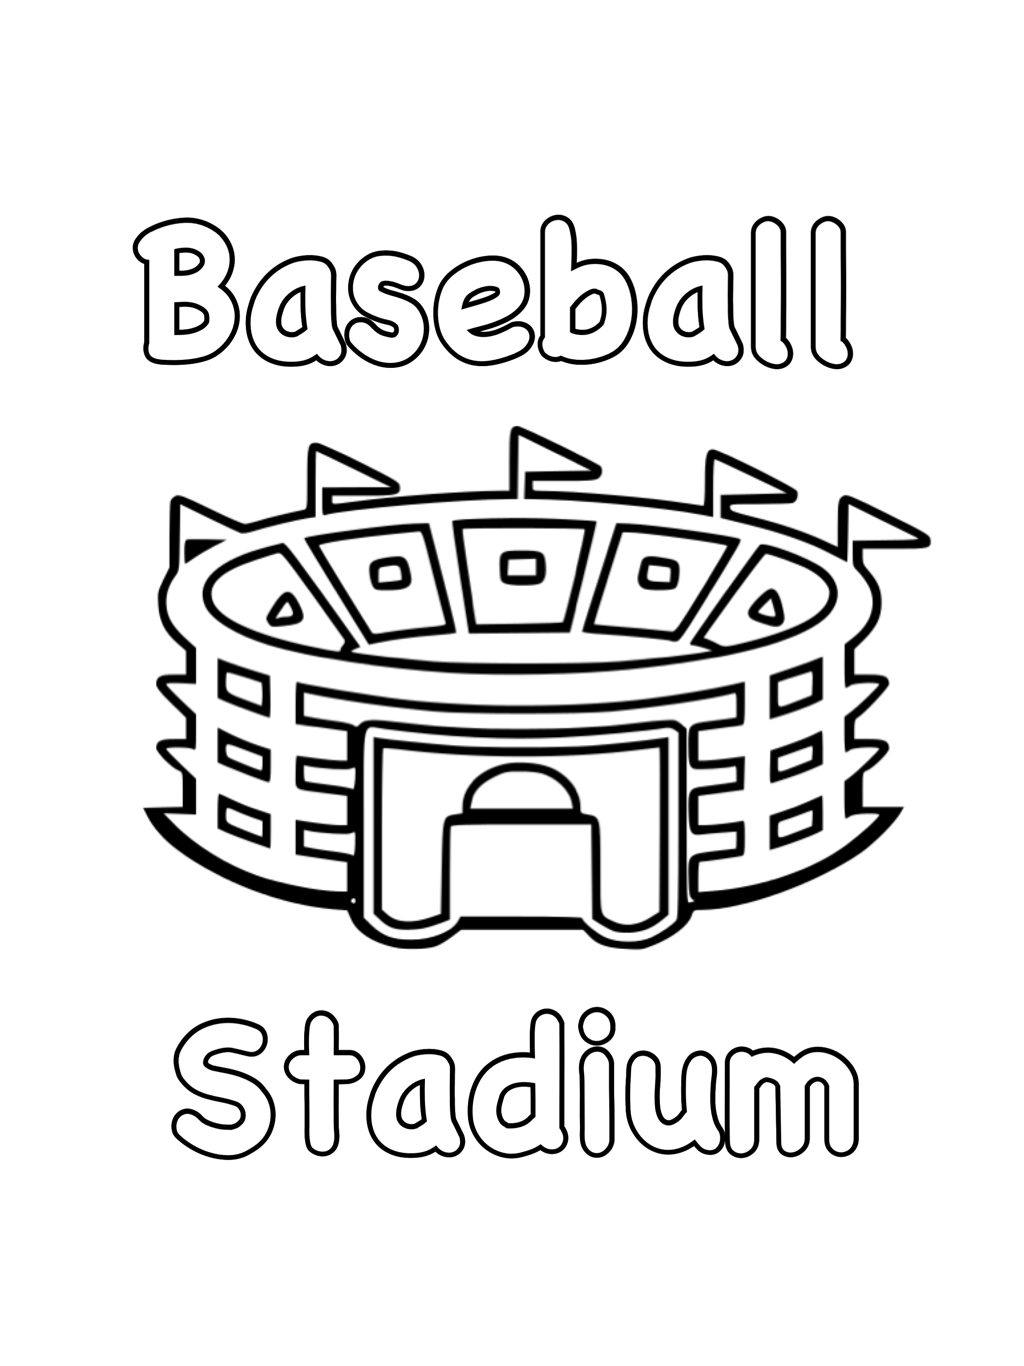 baseball free coloring pages - Free Coloring Pages Baseball 2